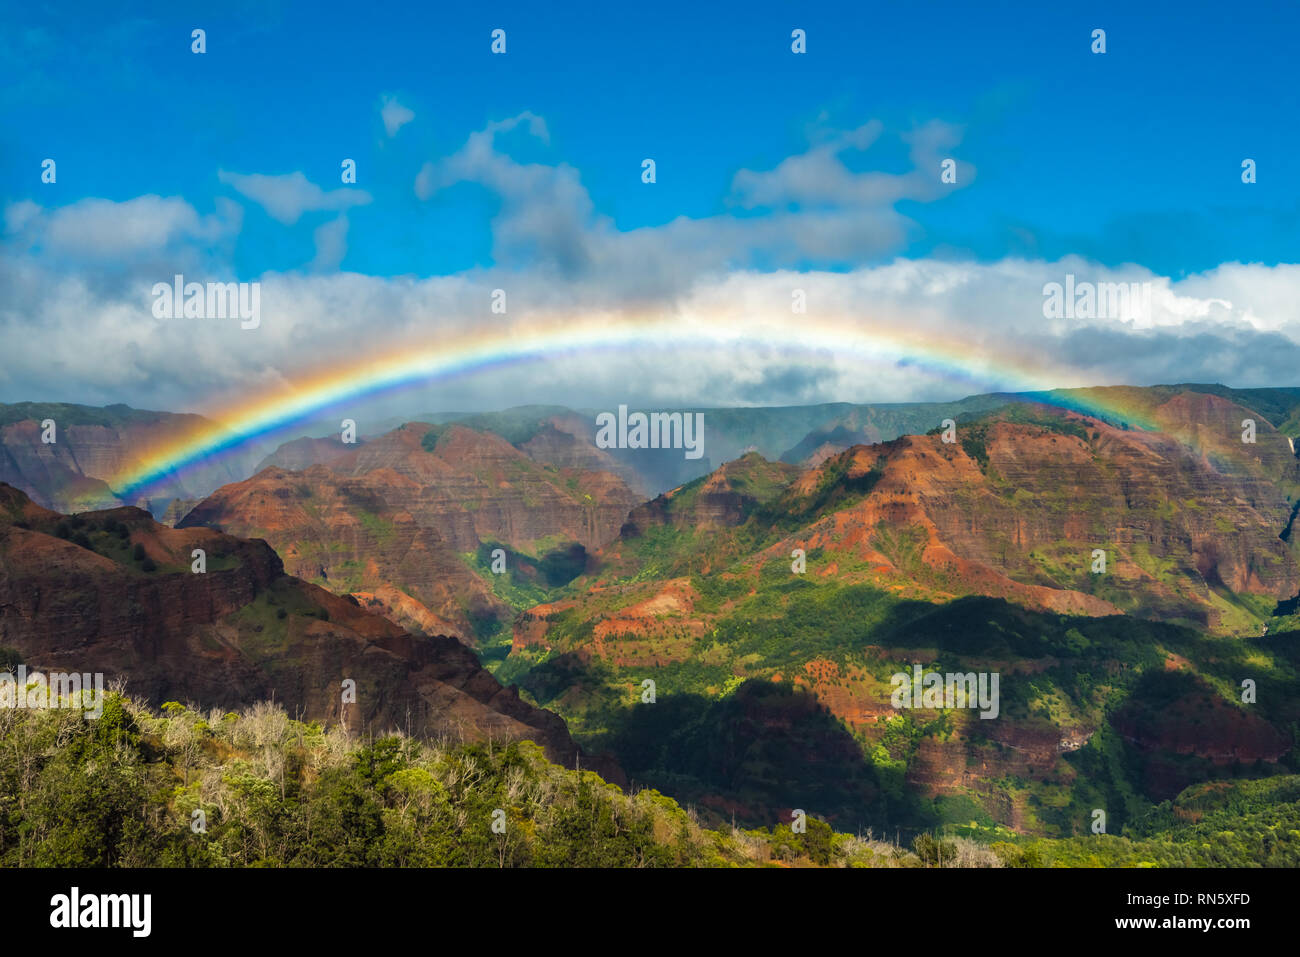 Hawaiian Landscapes Stock Photo 236773137 Alamy